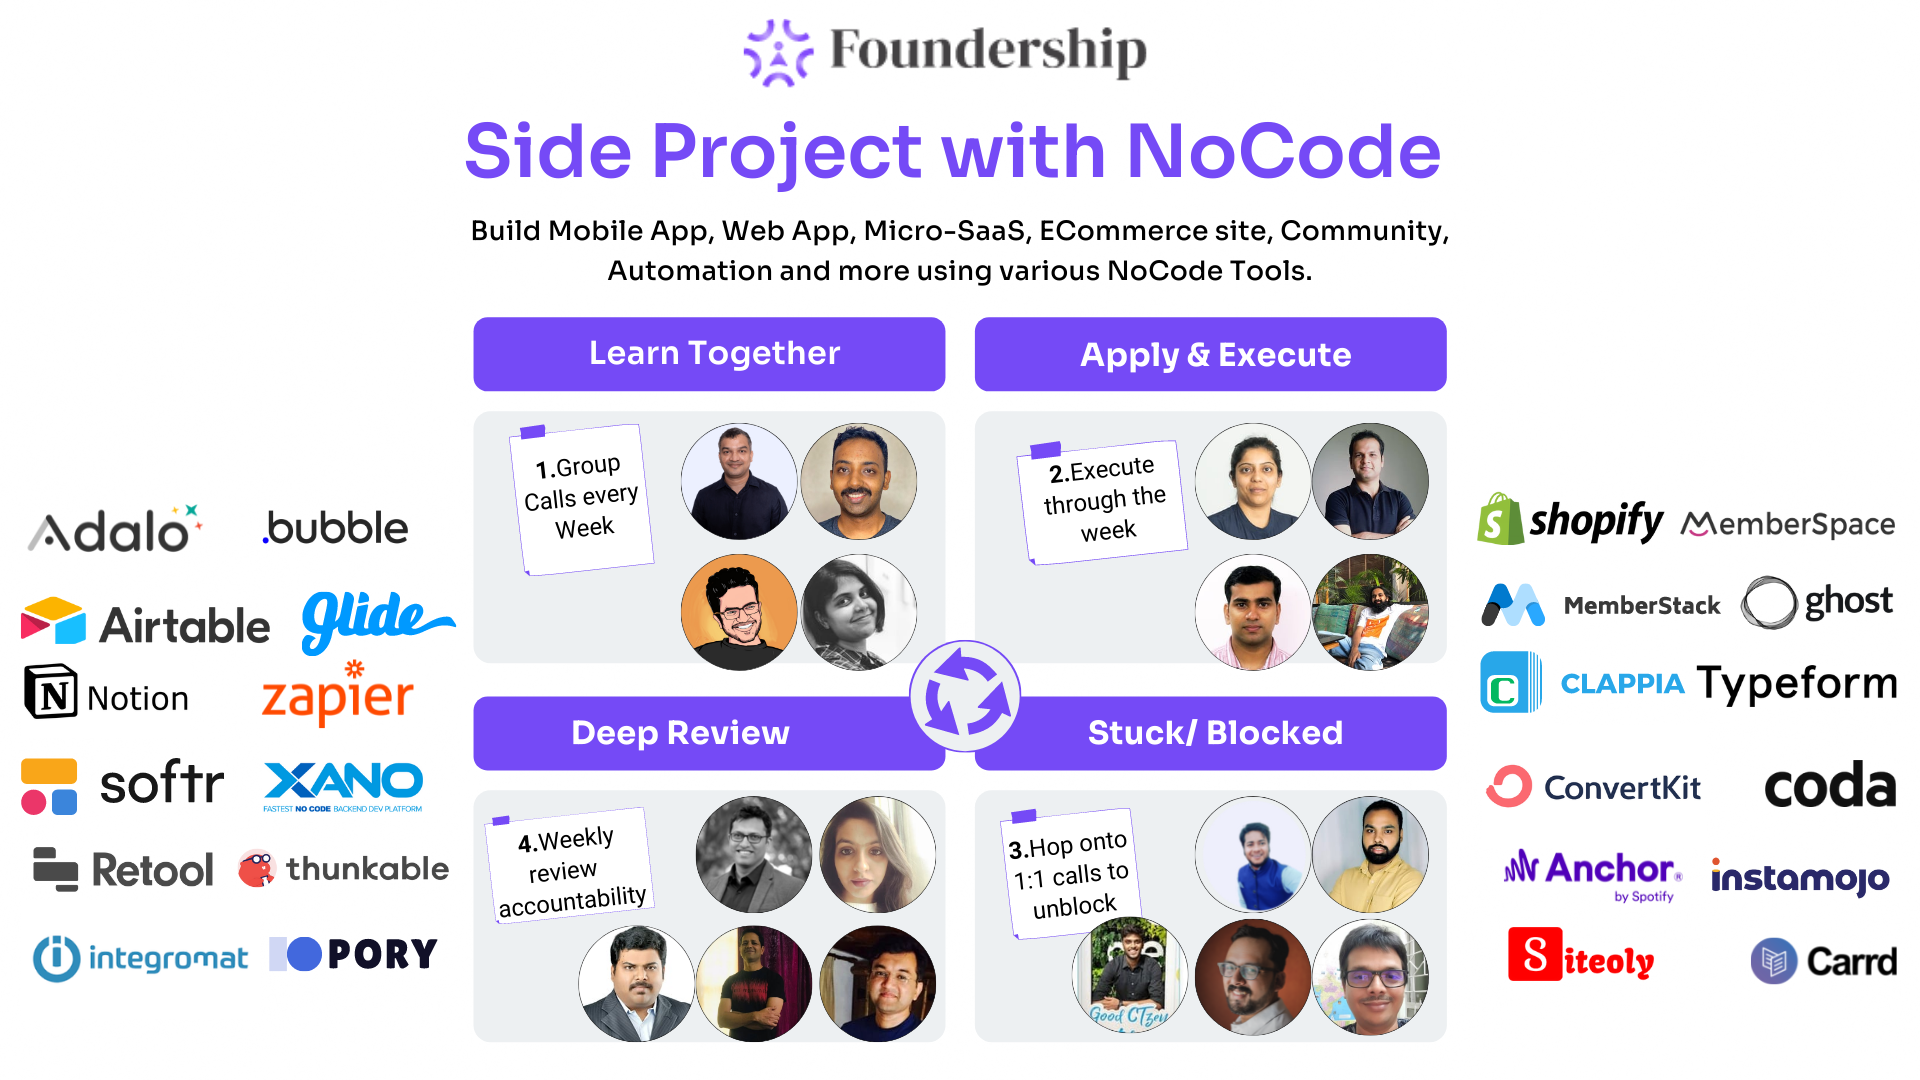 Announcing Cohort Program: Build a SideProject with NoCode